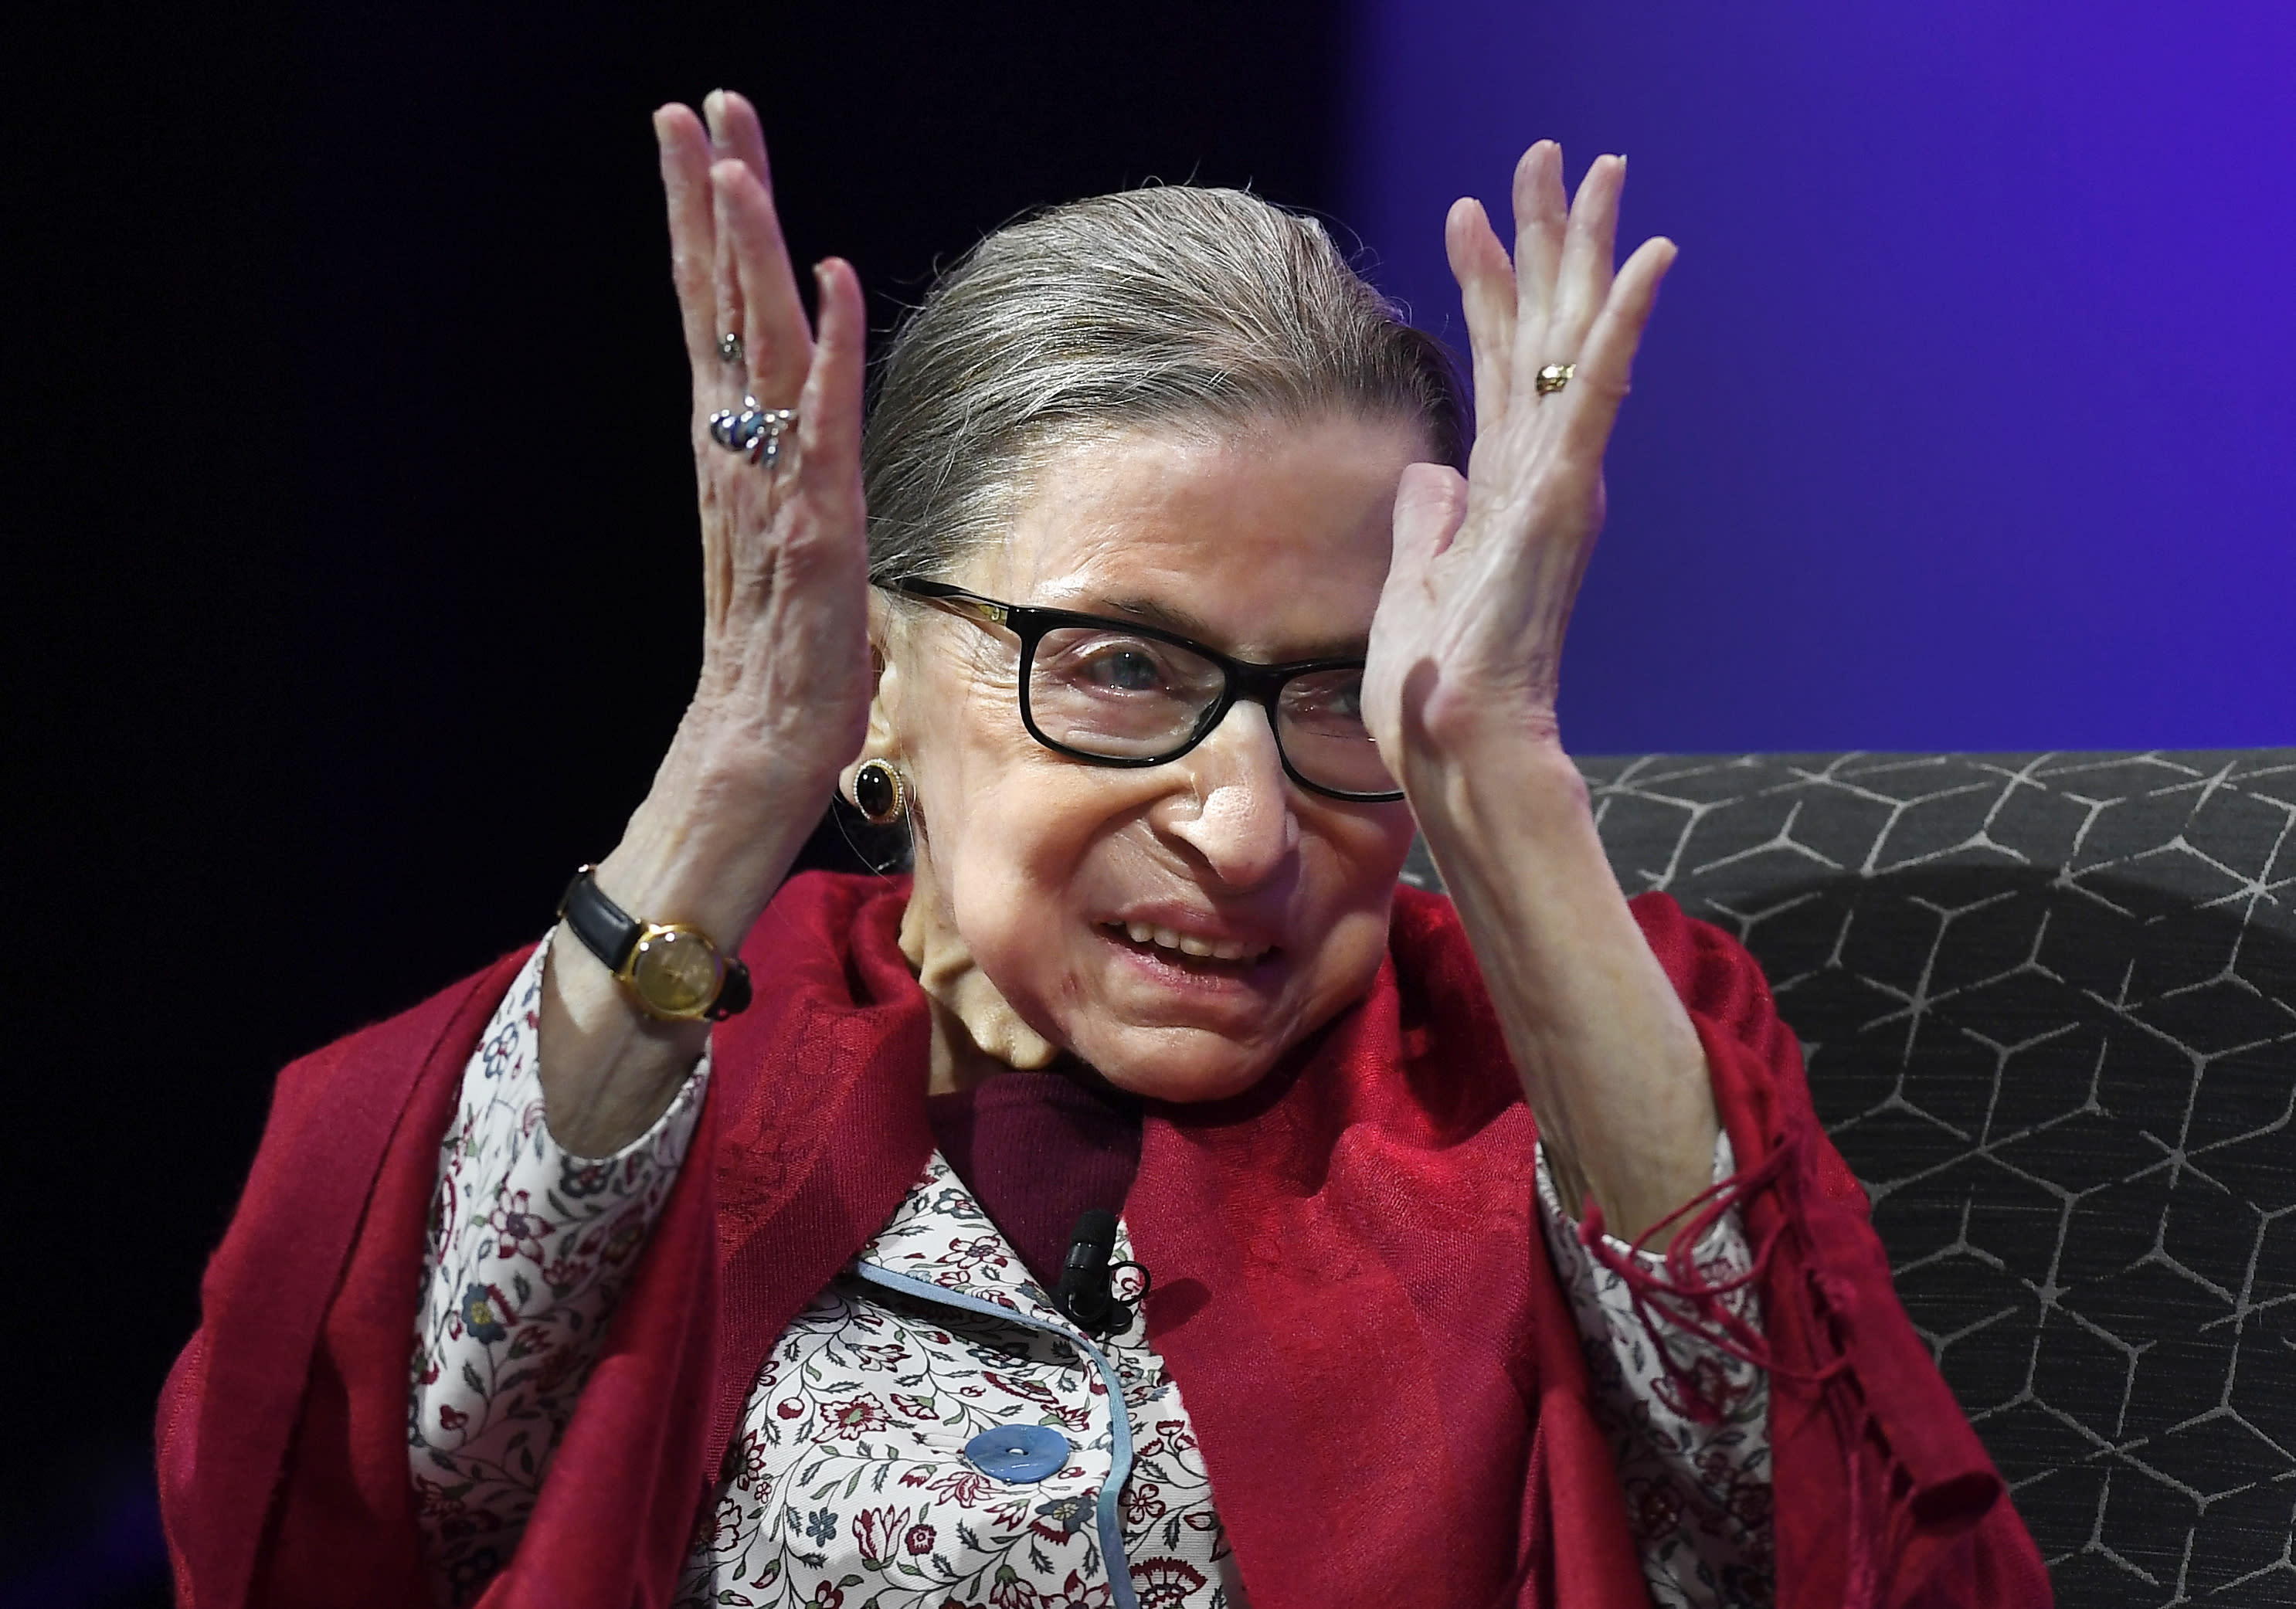 U.S. Justice Ruth Bader Ginsburg to receive $1 million Berggruen Prize